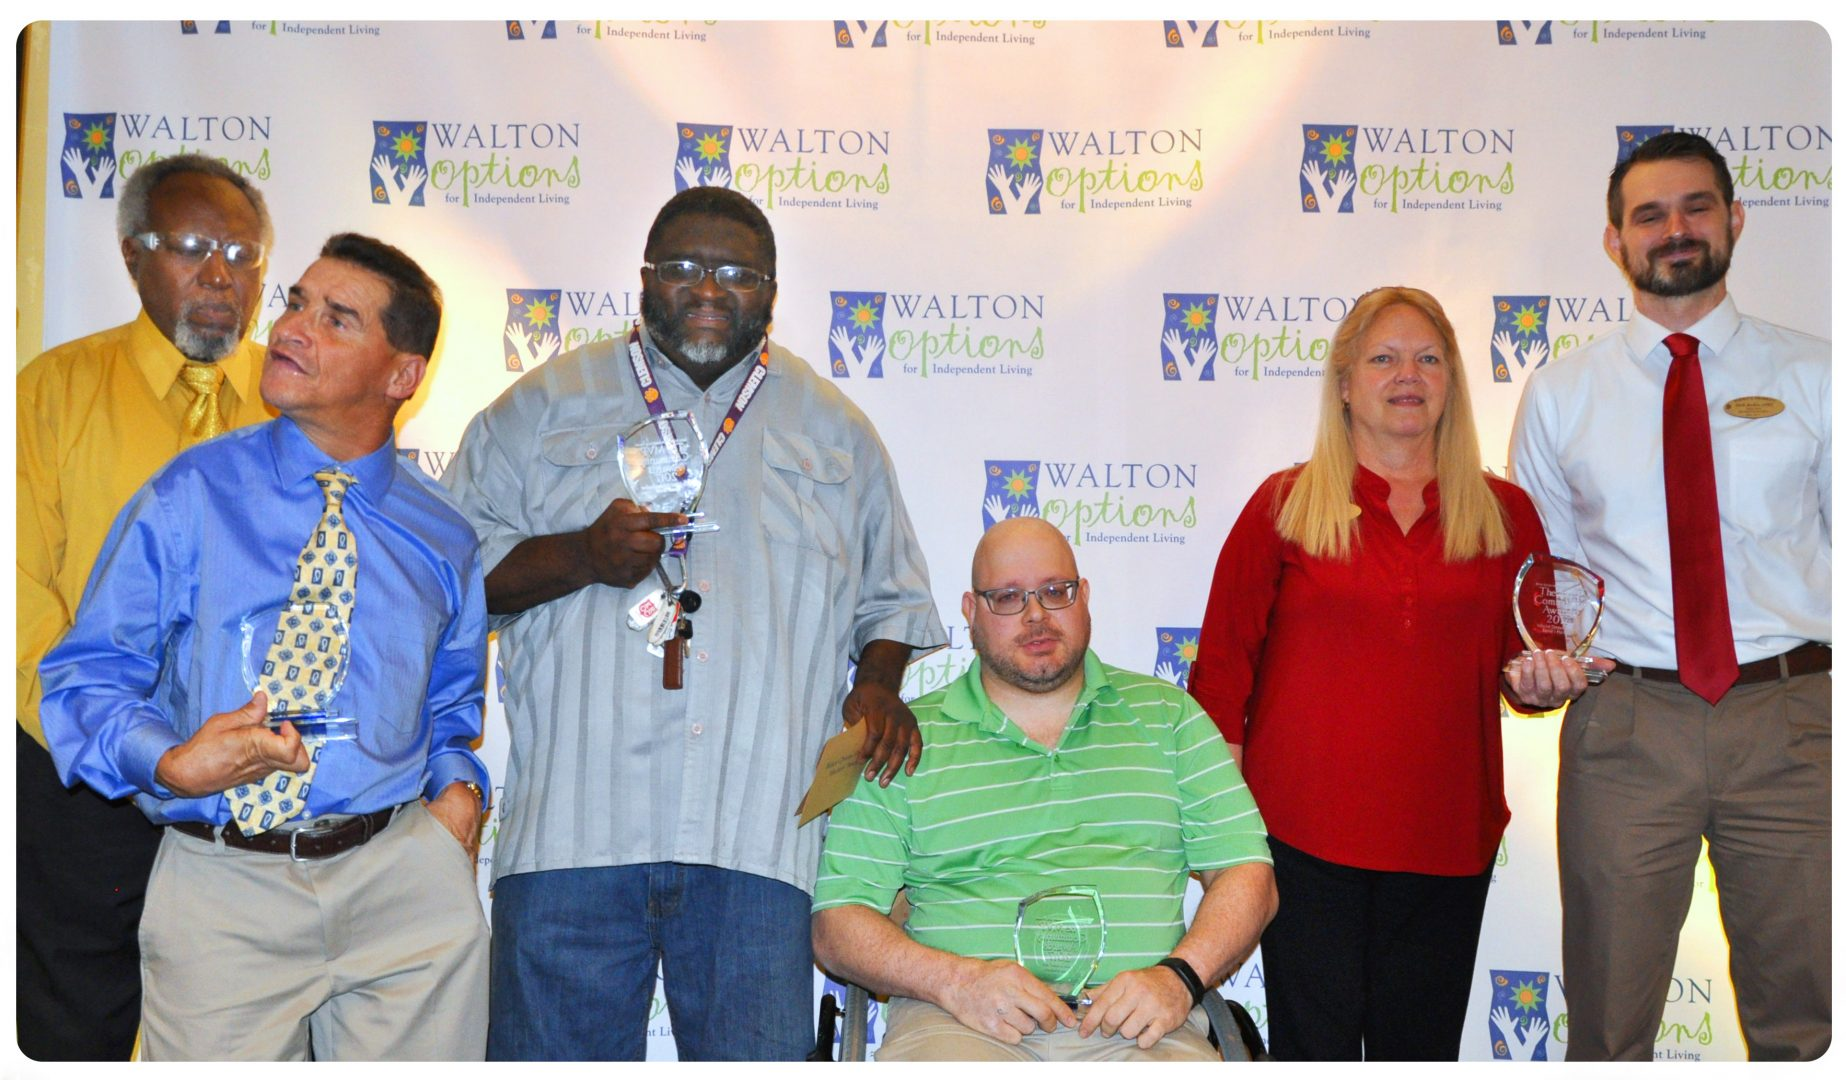 The 2017 MVP Awards Winners lined up in front of the Walton Options backdrop - from left to right: Gerald Powell, Marty Torcius, Spencer Gartrell, Robbie Breshears, Barney's Pharmacy representatives (a woman and a man)